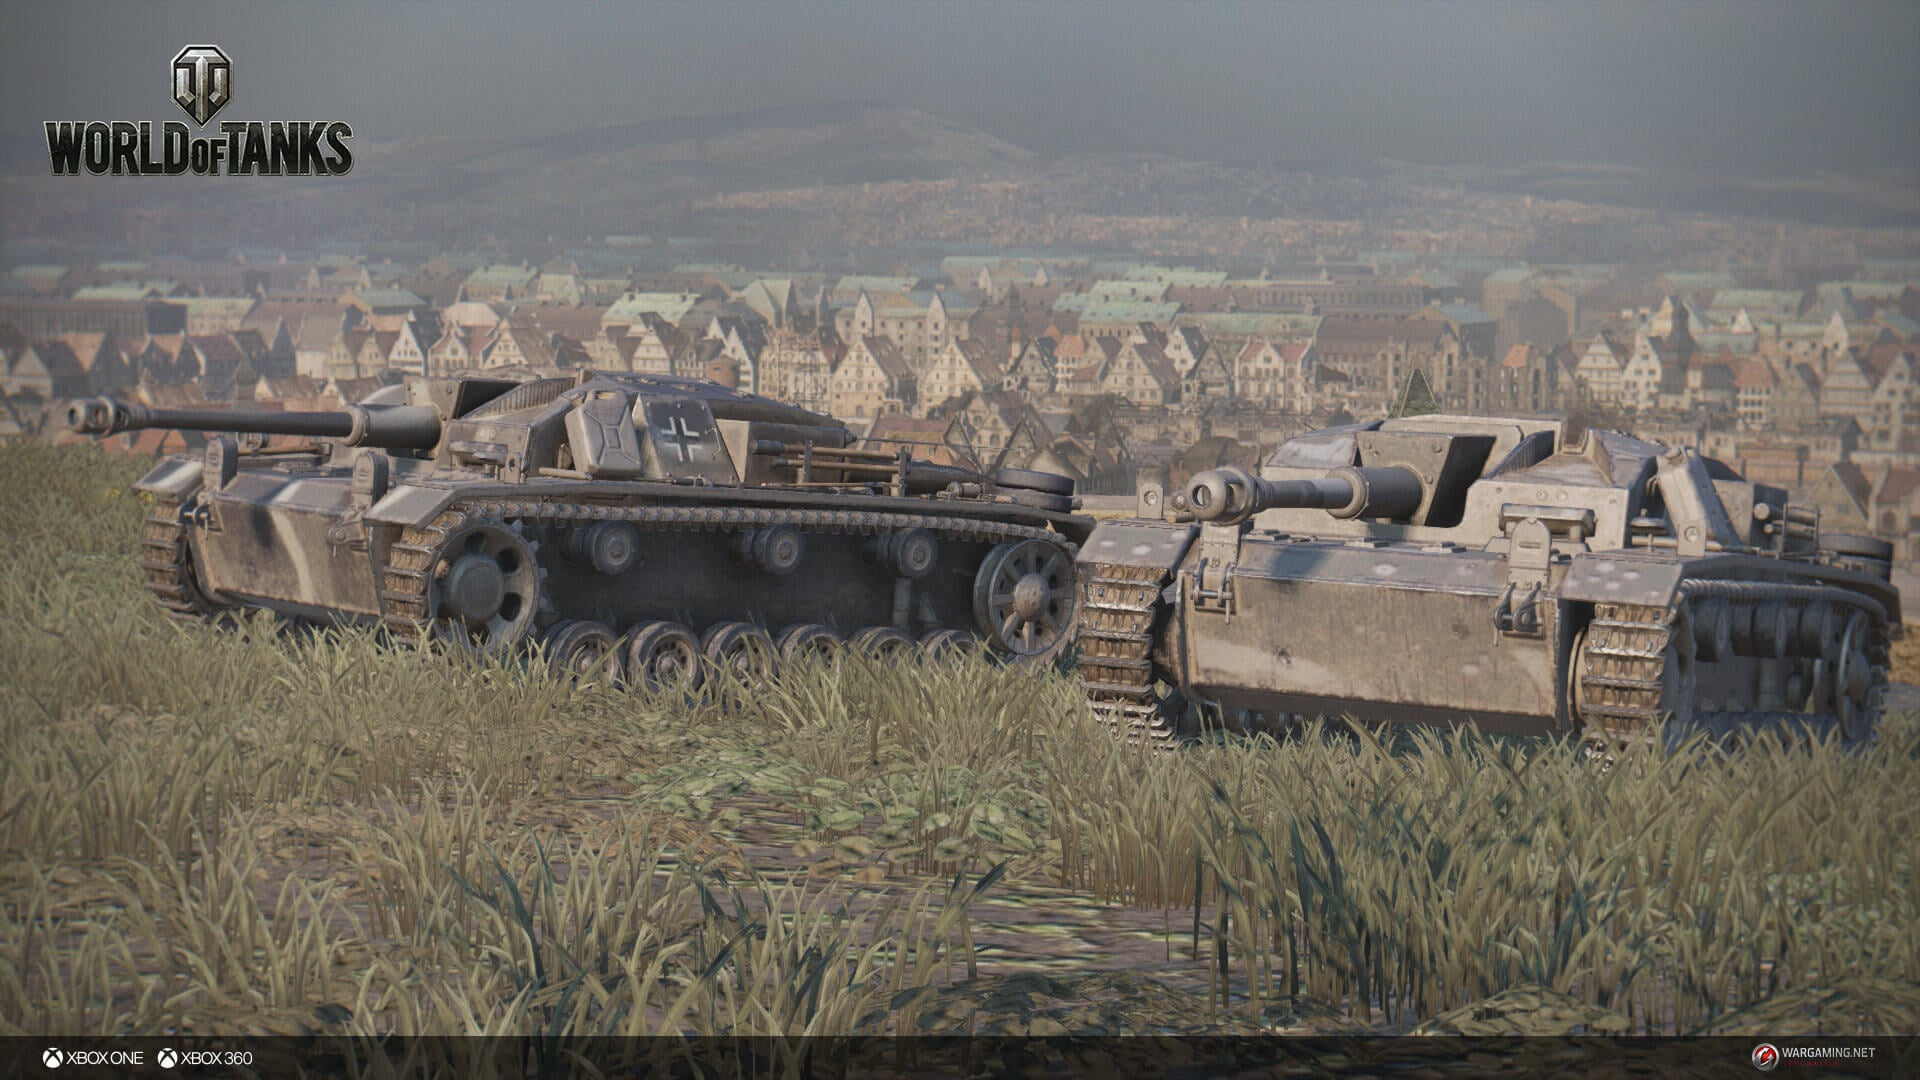 world of tanks update 2.4 details